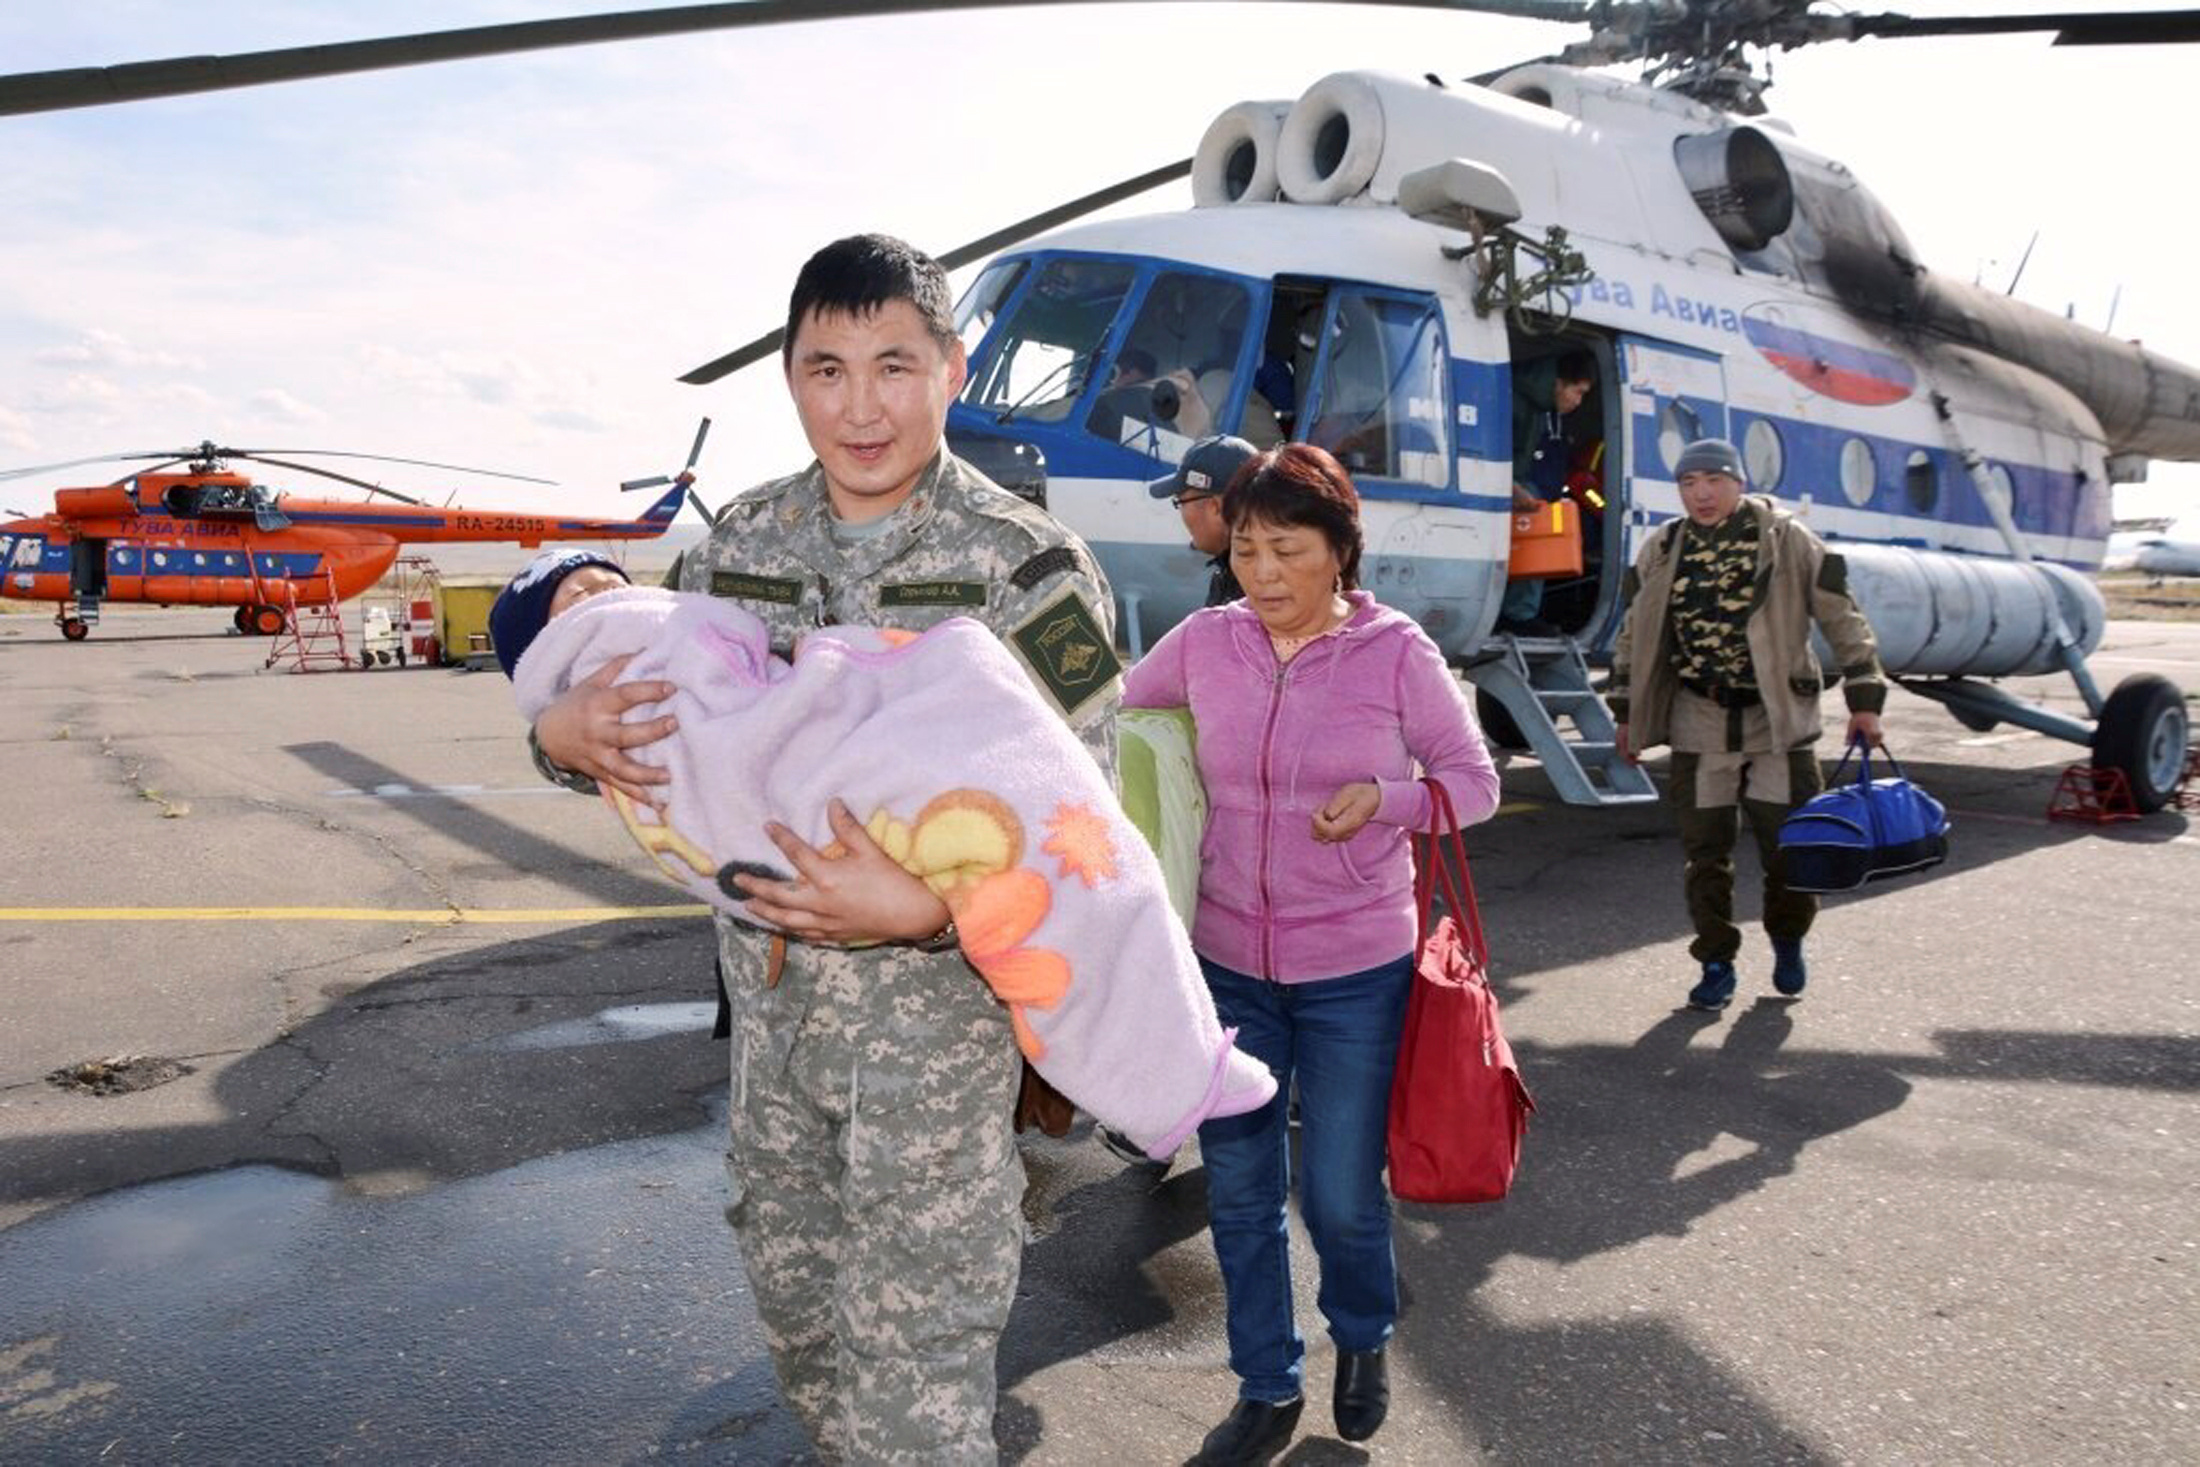 A photo released by the Russian Emergencies Ministry on Sept. 21, 2016, shows a rescuer carrying a three-year-old boy Tserin, who went missing in the Siberian Taiga area and was found three days later, at a landing site in Tyva region, Russia.